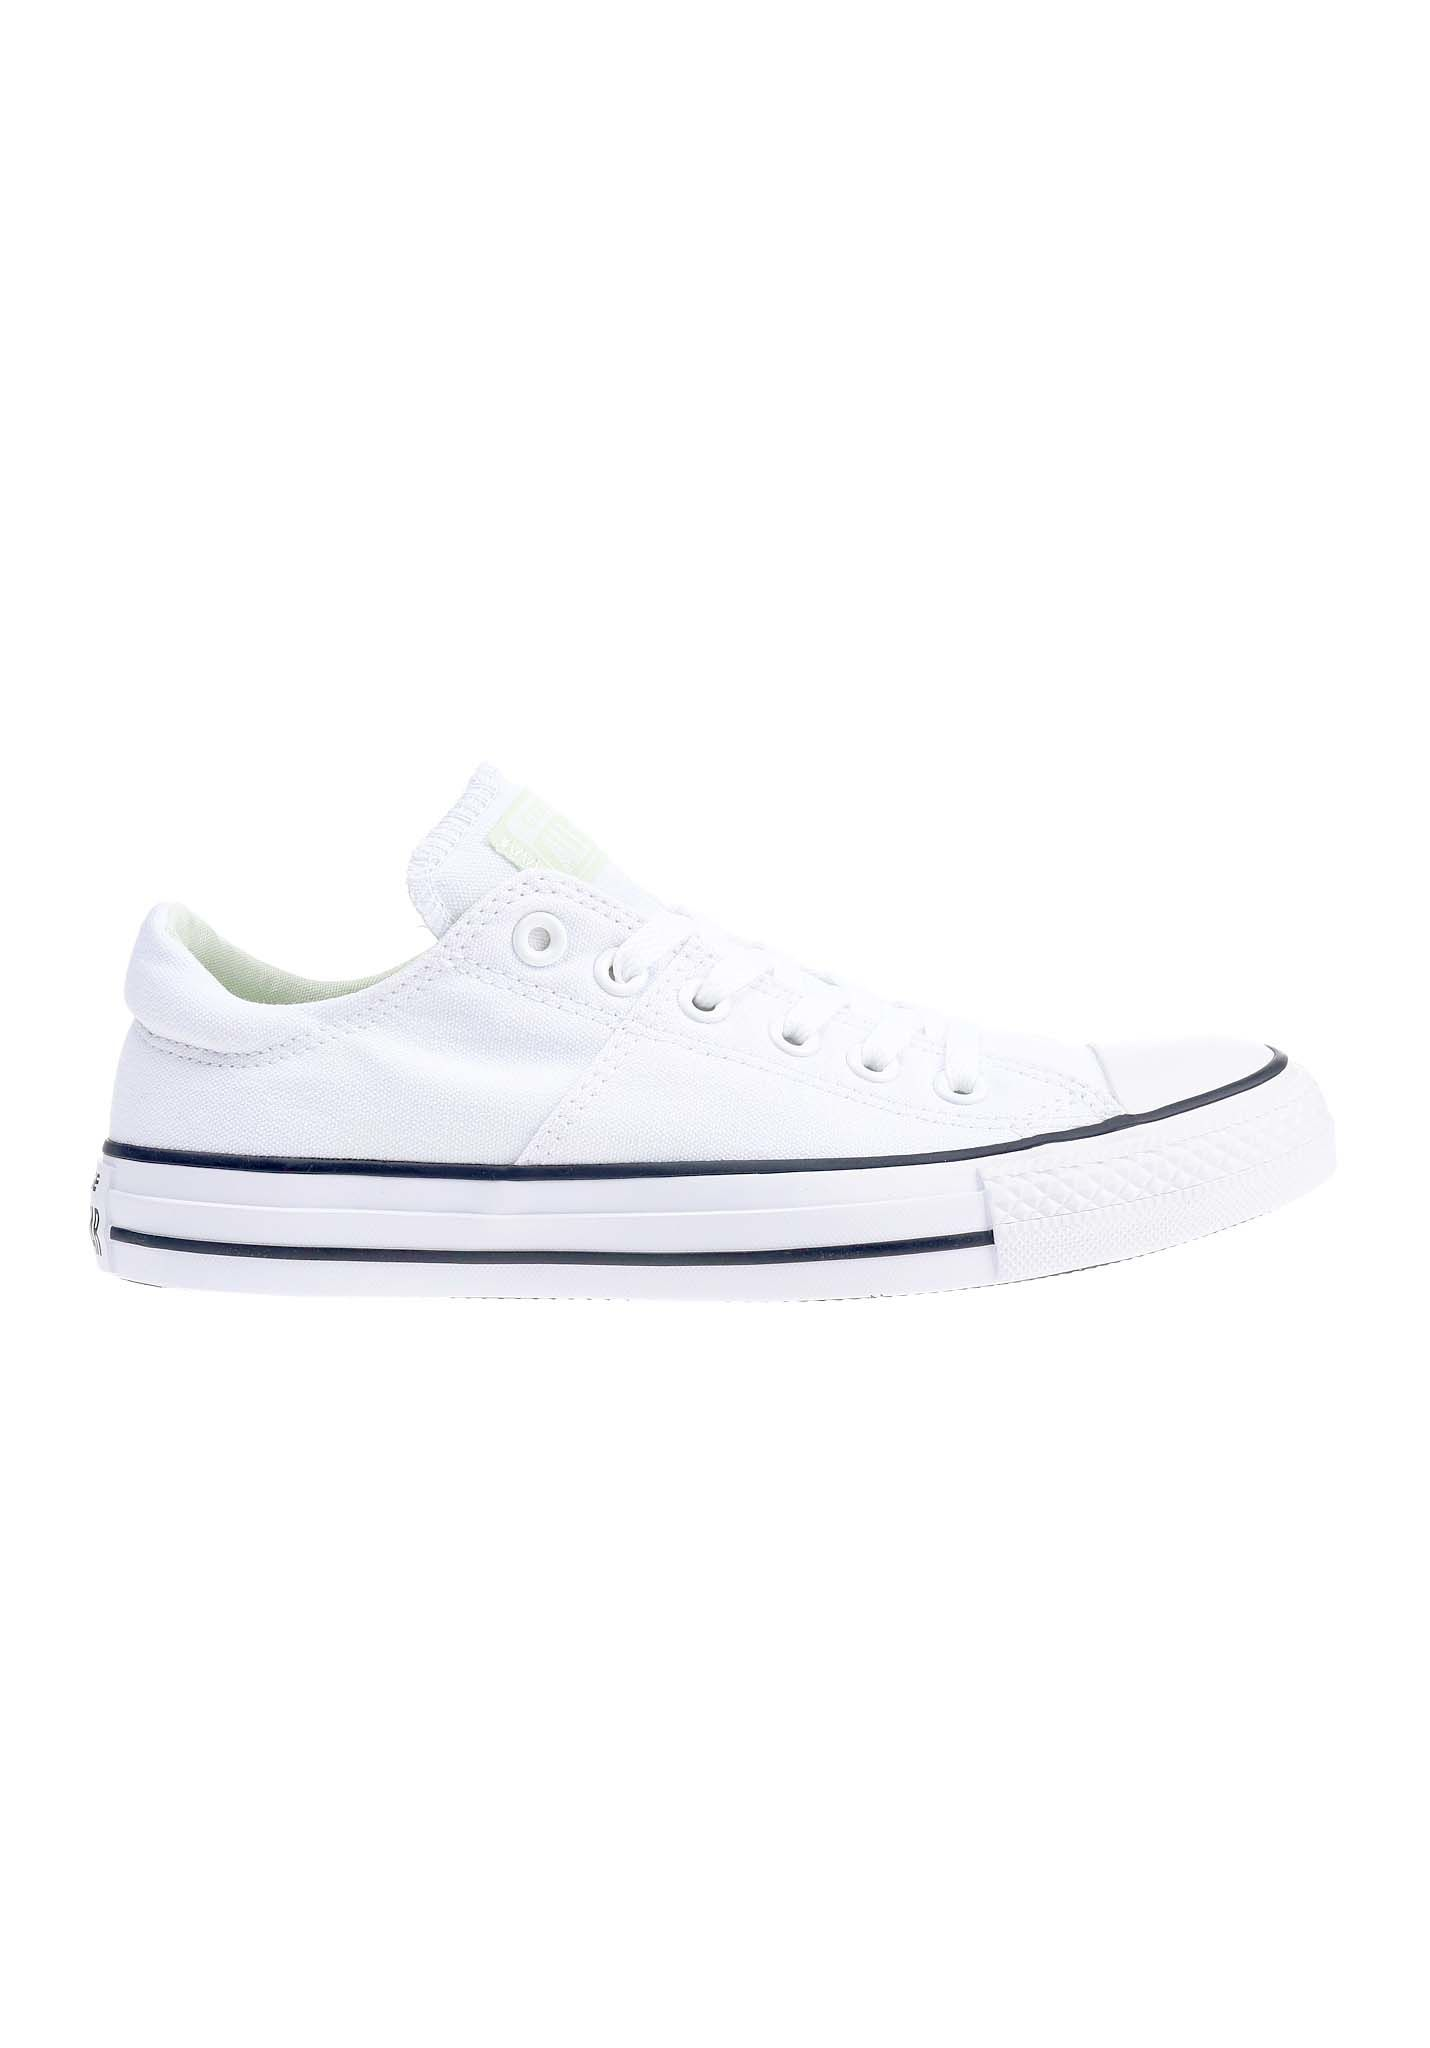 d03449bde4e1 Converse Chuck Taylor All Star Madison Ox - Sneakers for Women - White -  Planet Sports